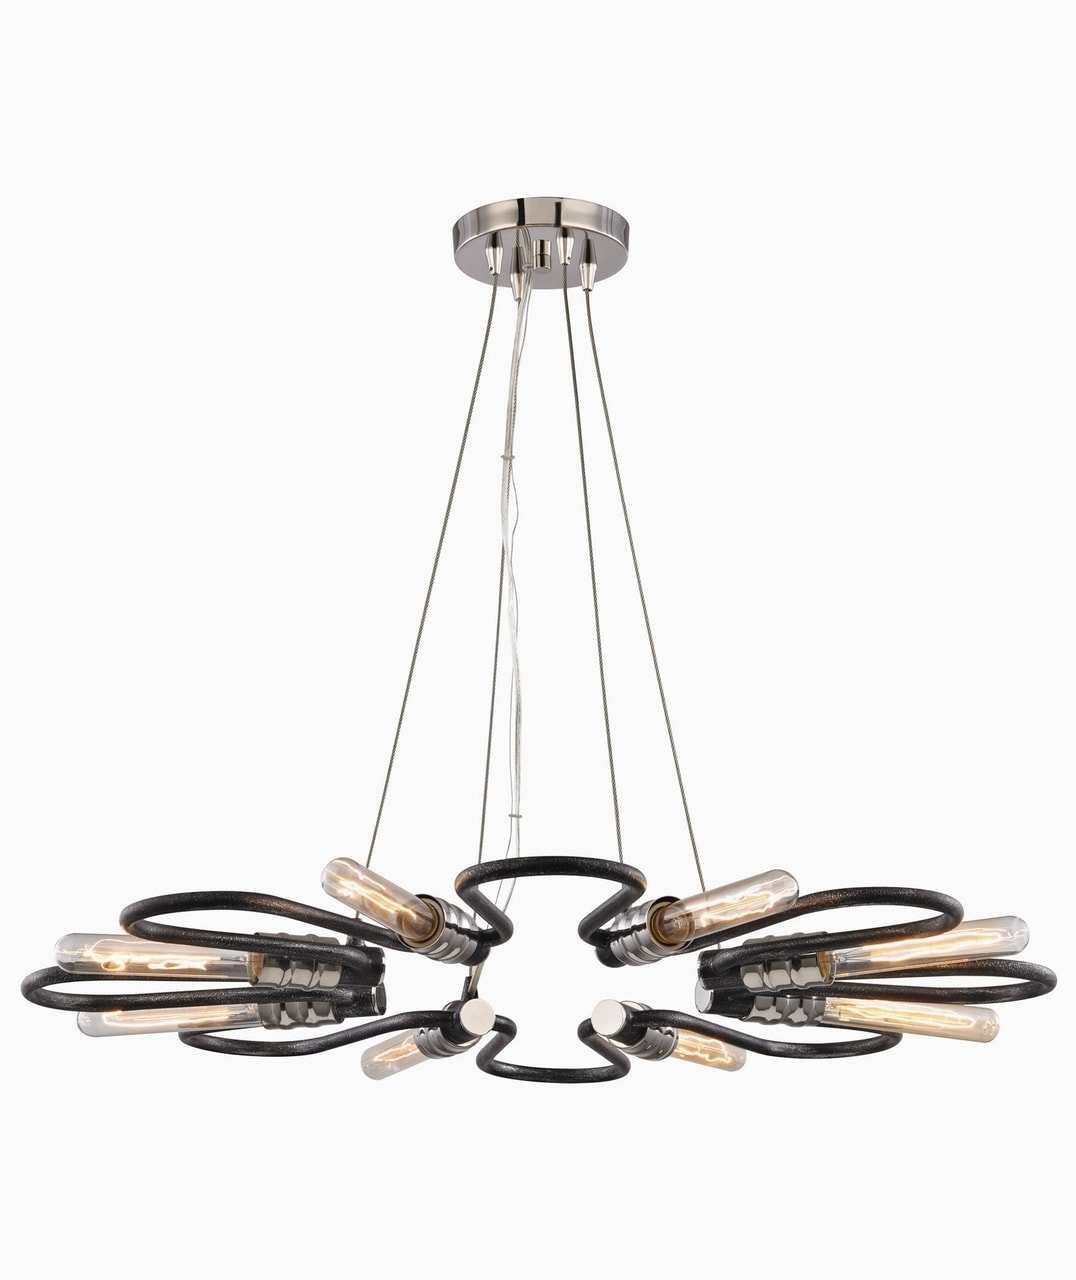 products continuum 8 light chandelier 31903 8  77132.1475670080.1280.1280